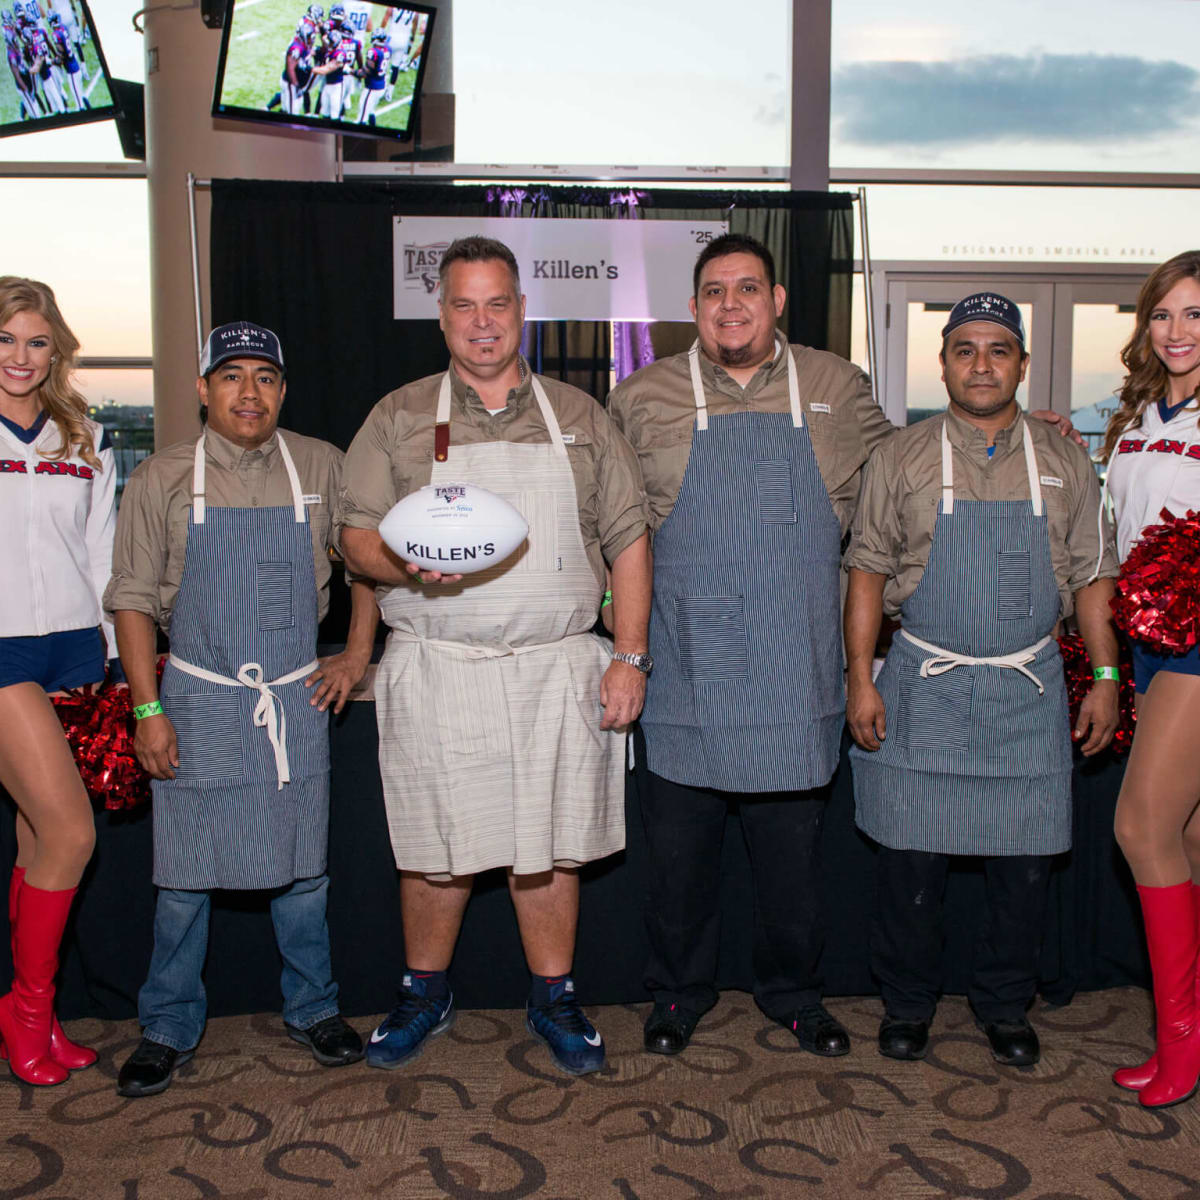 Taste of the Texans Ronnie Killen Teddy Lopez